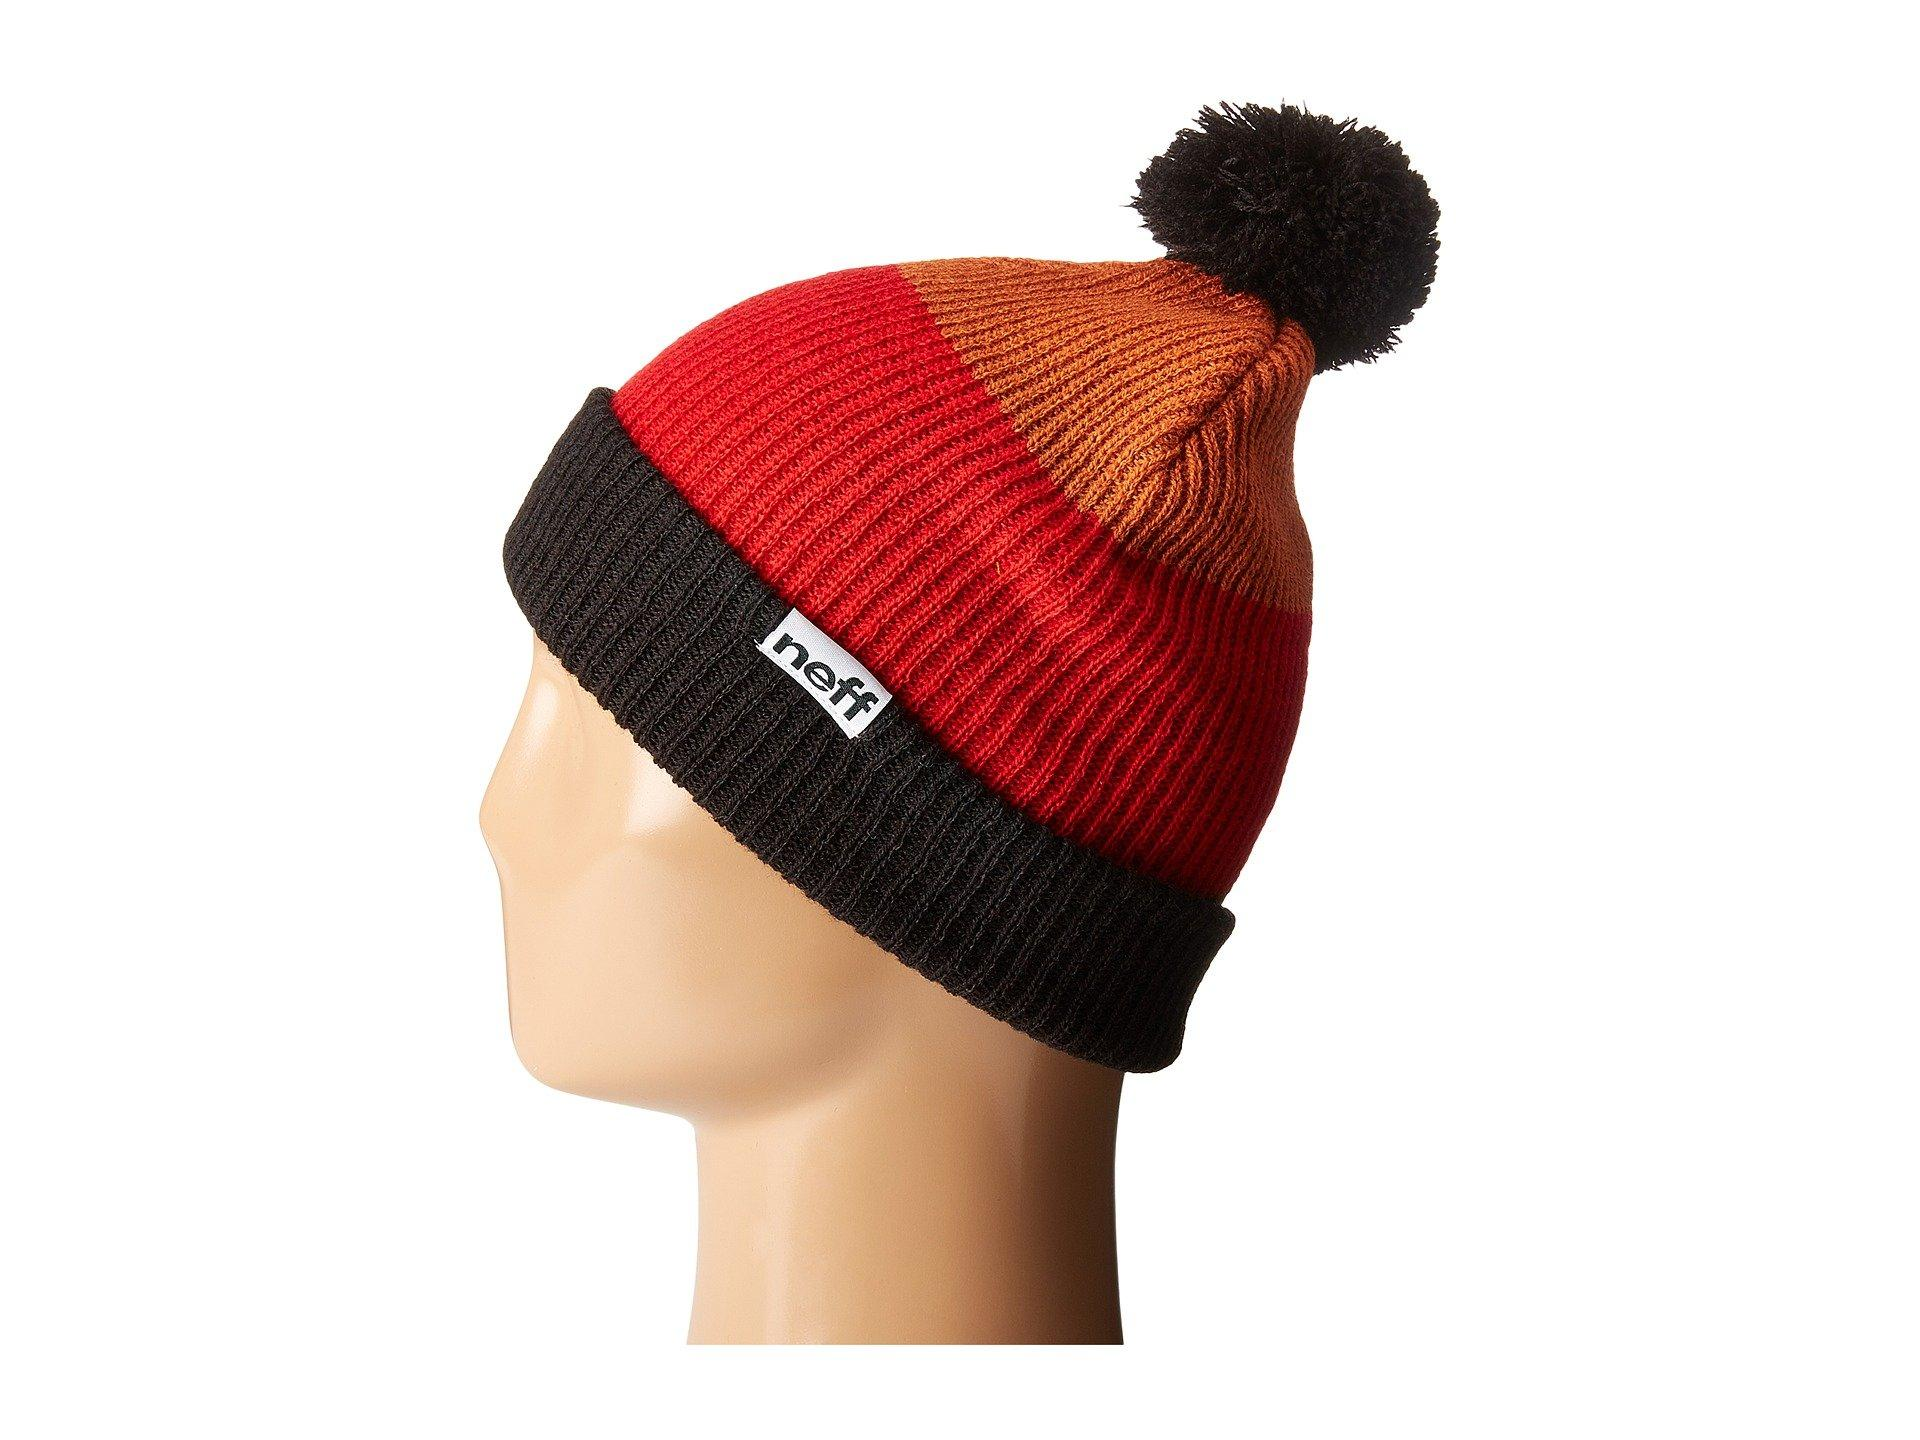 Lyst - Neff Snappy Beanie in Red for Men 175fb0d48ca